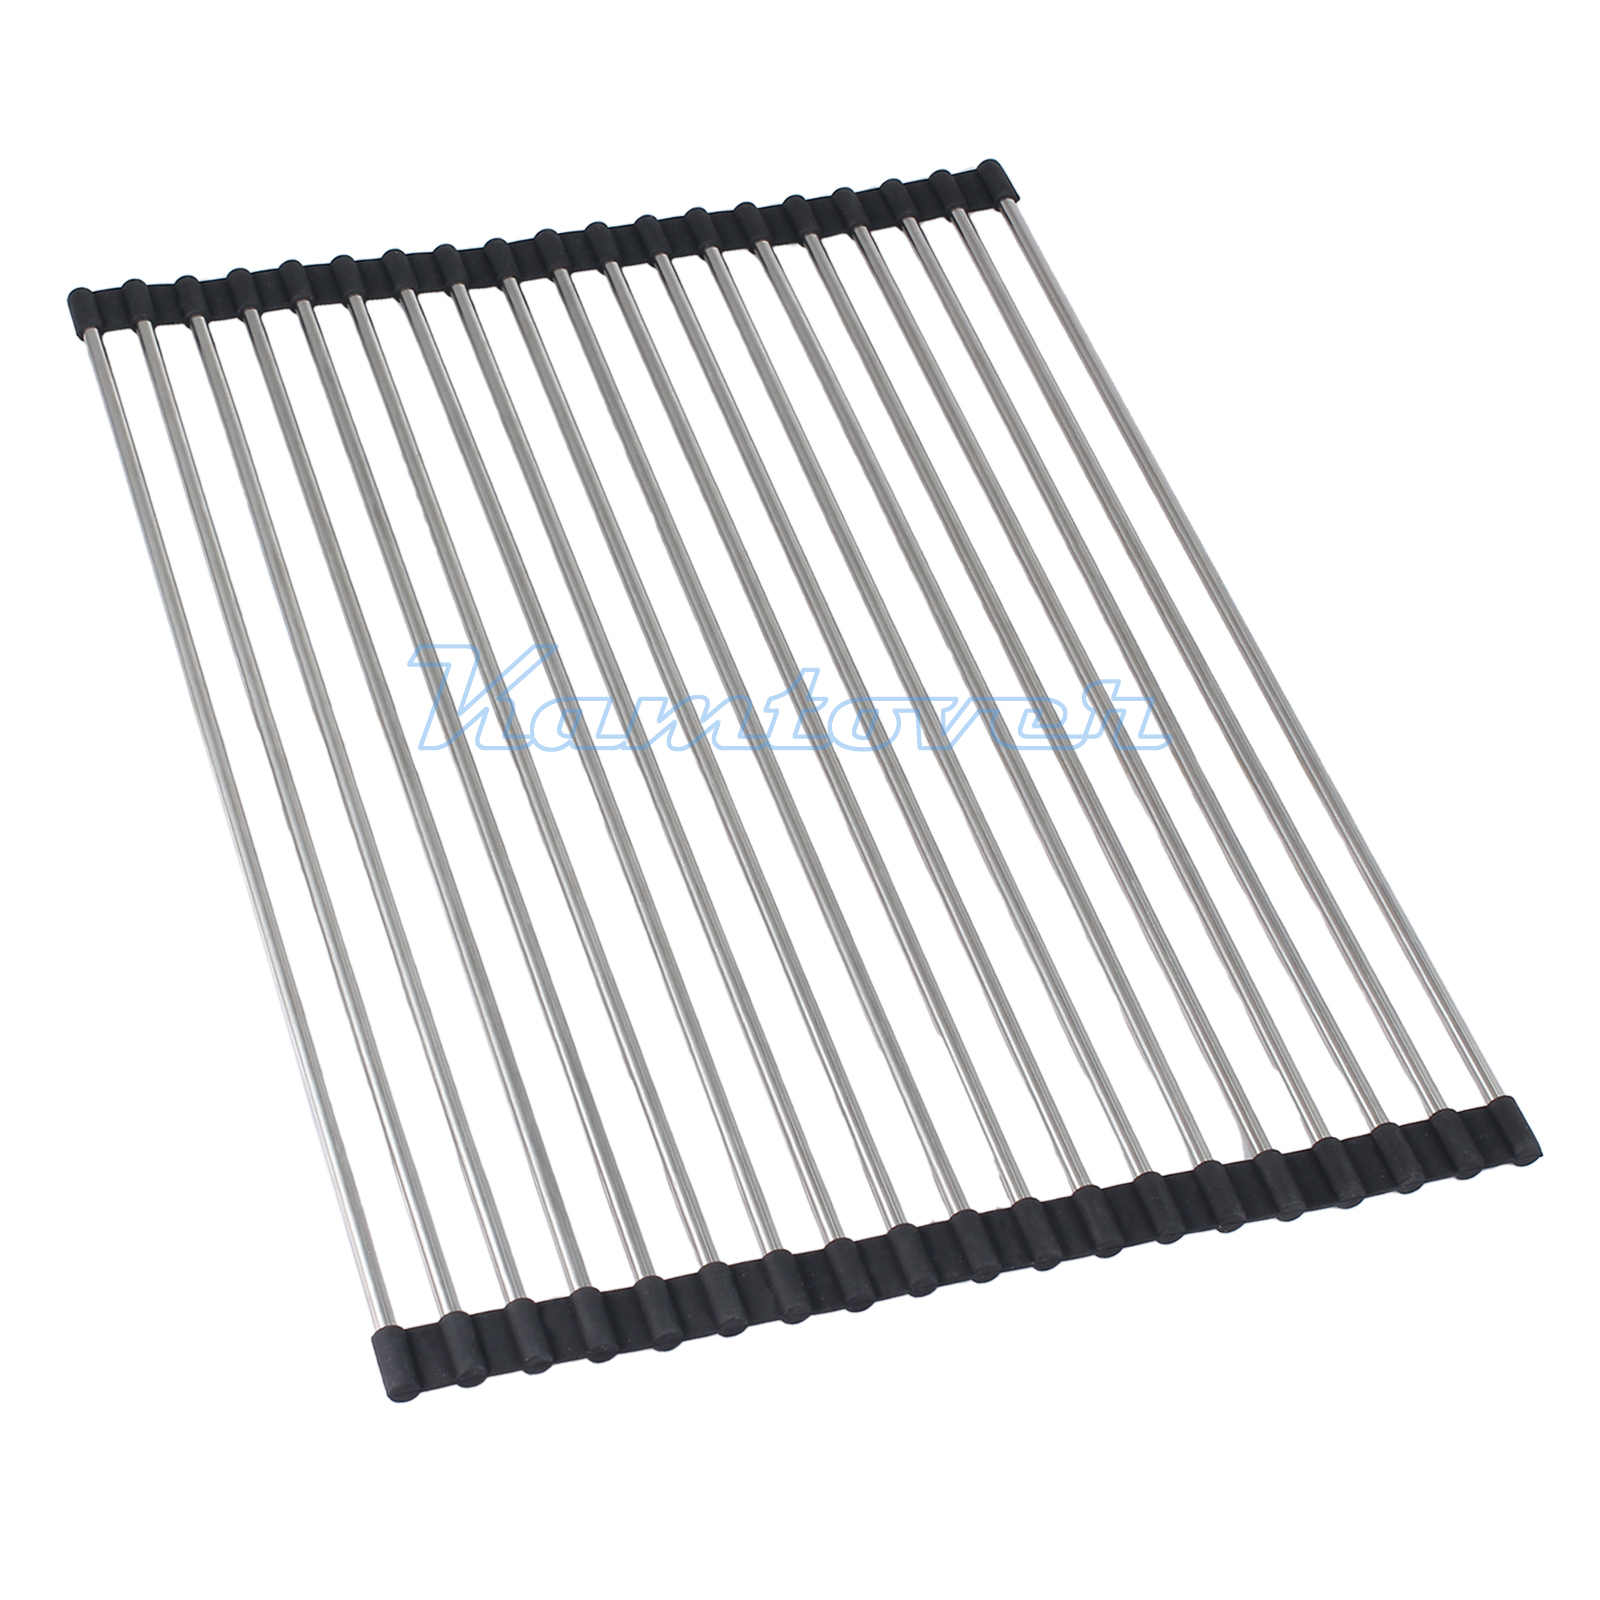 Stainless Steel Roll Up Dish Drying Rack Heat Mat Kitchen